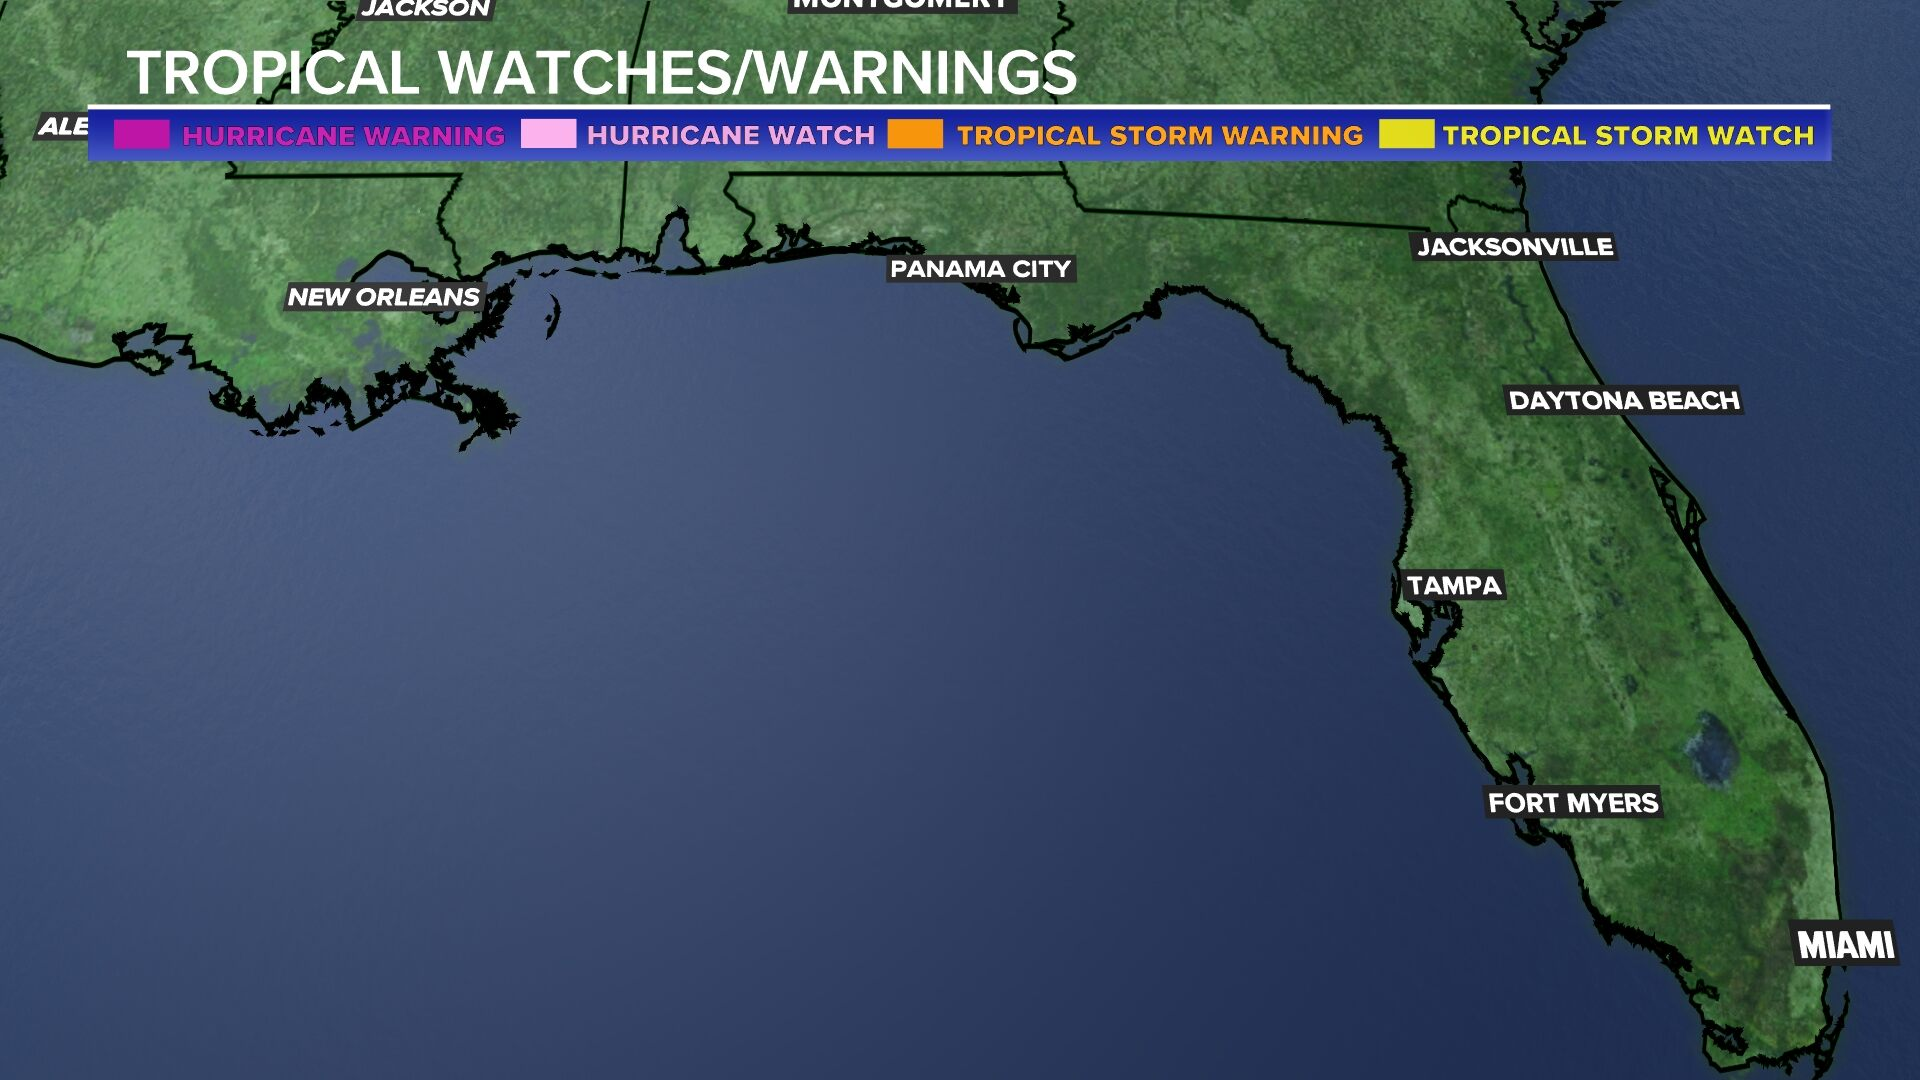 Southeast Watches and Warnings